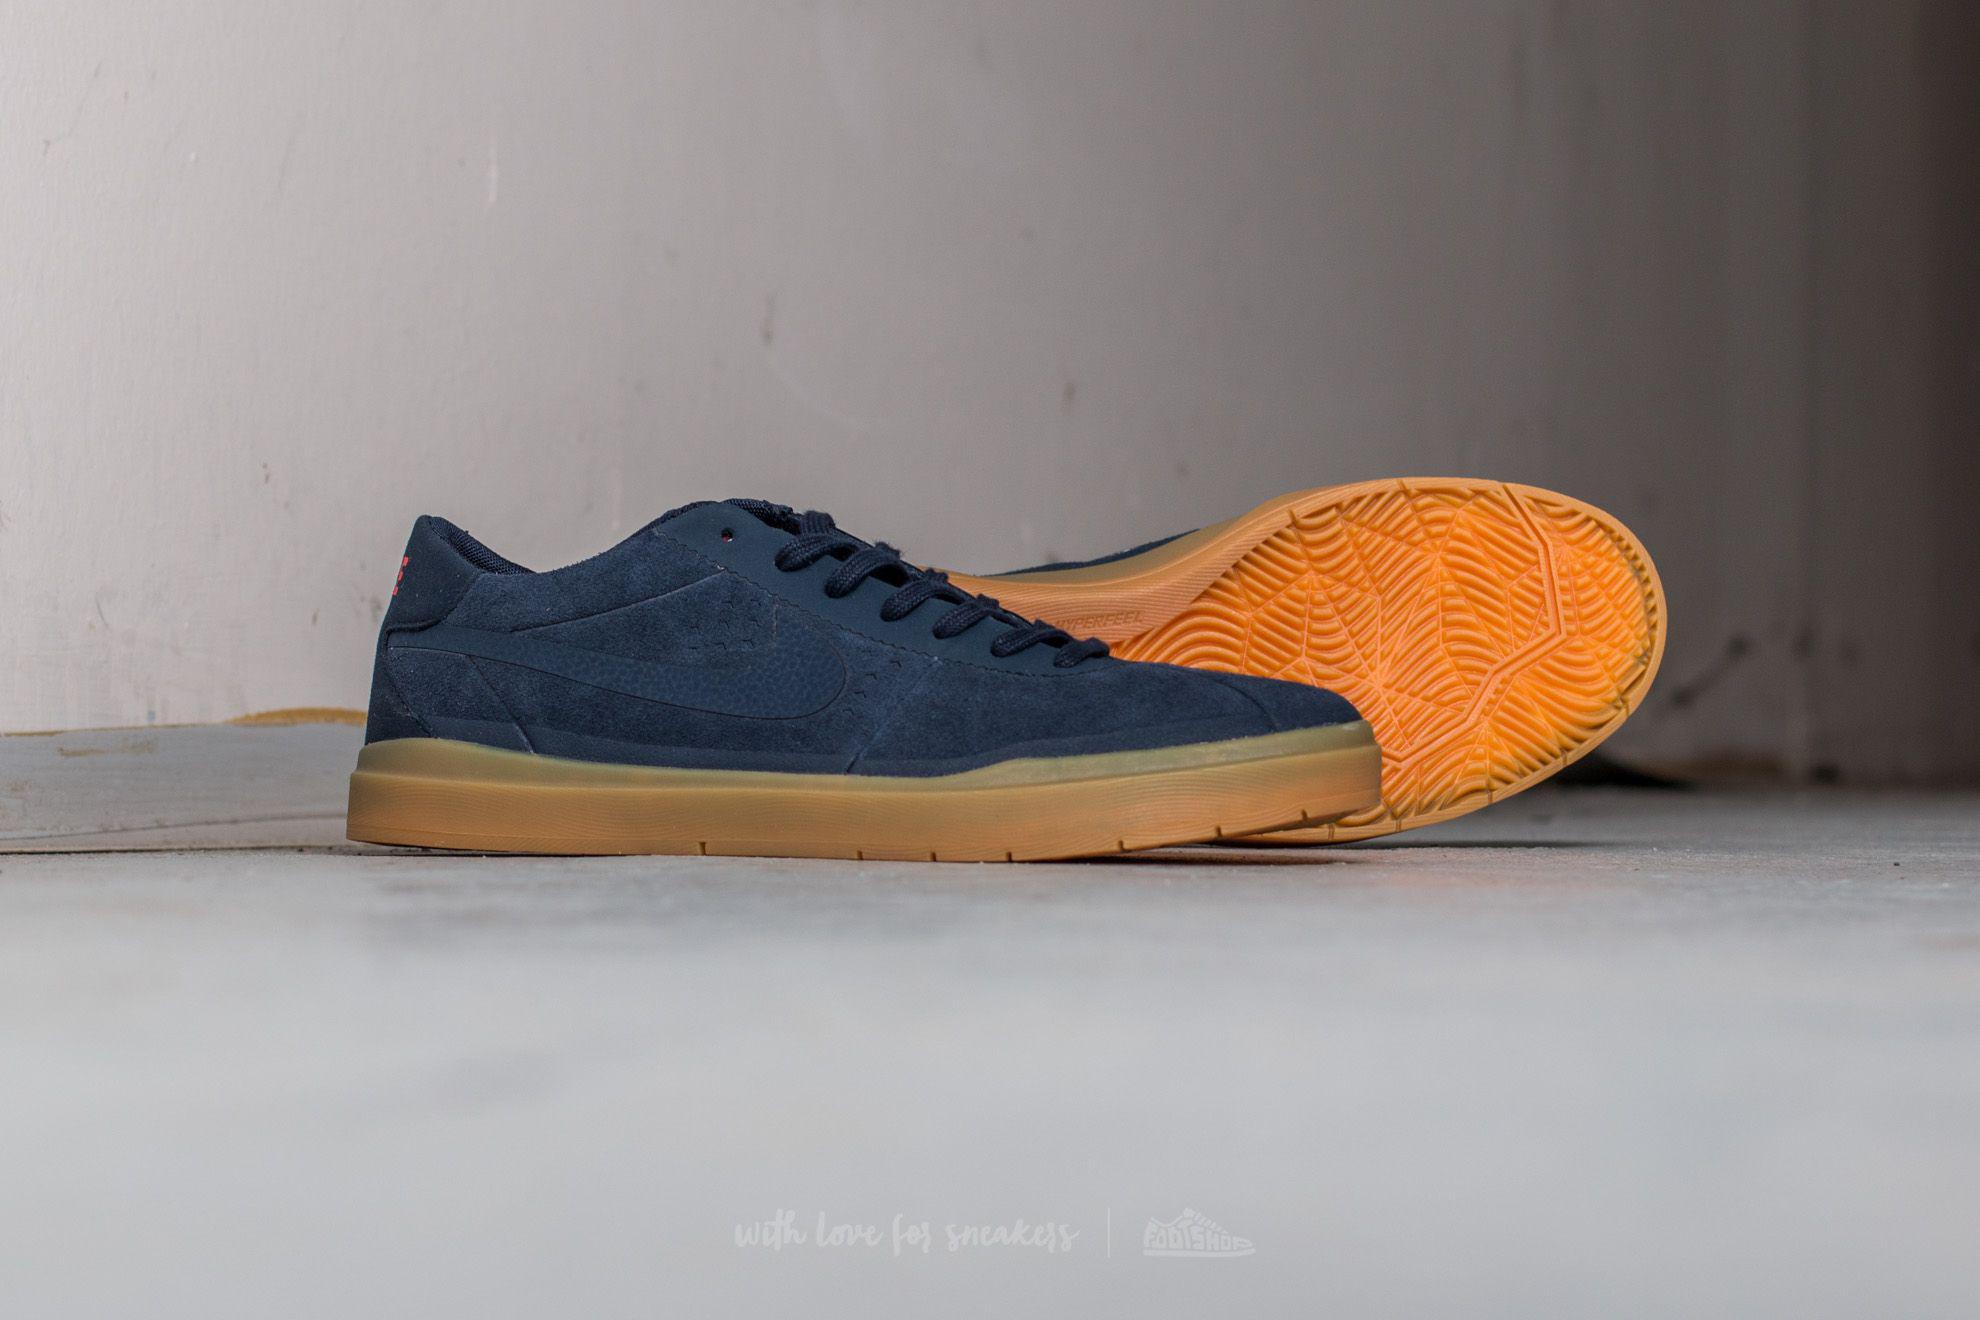 6a7f3e7e5dd6 Lyst - Nike Sb Bruin Hyperfeel Obsidian  Gum Light Brown  Max Orange ...